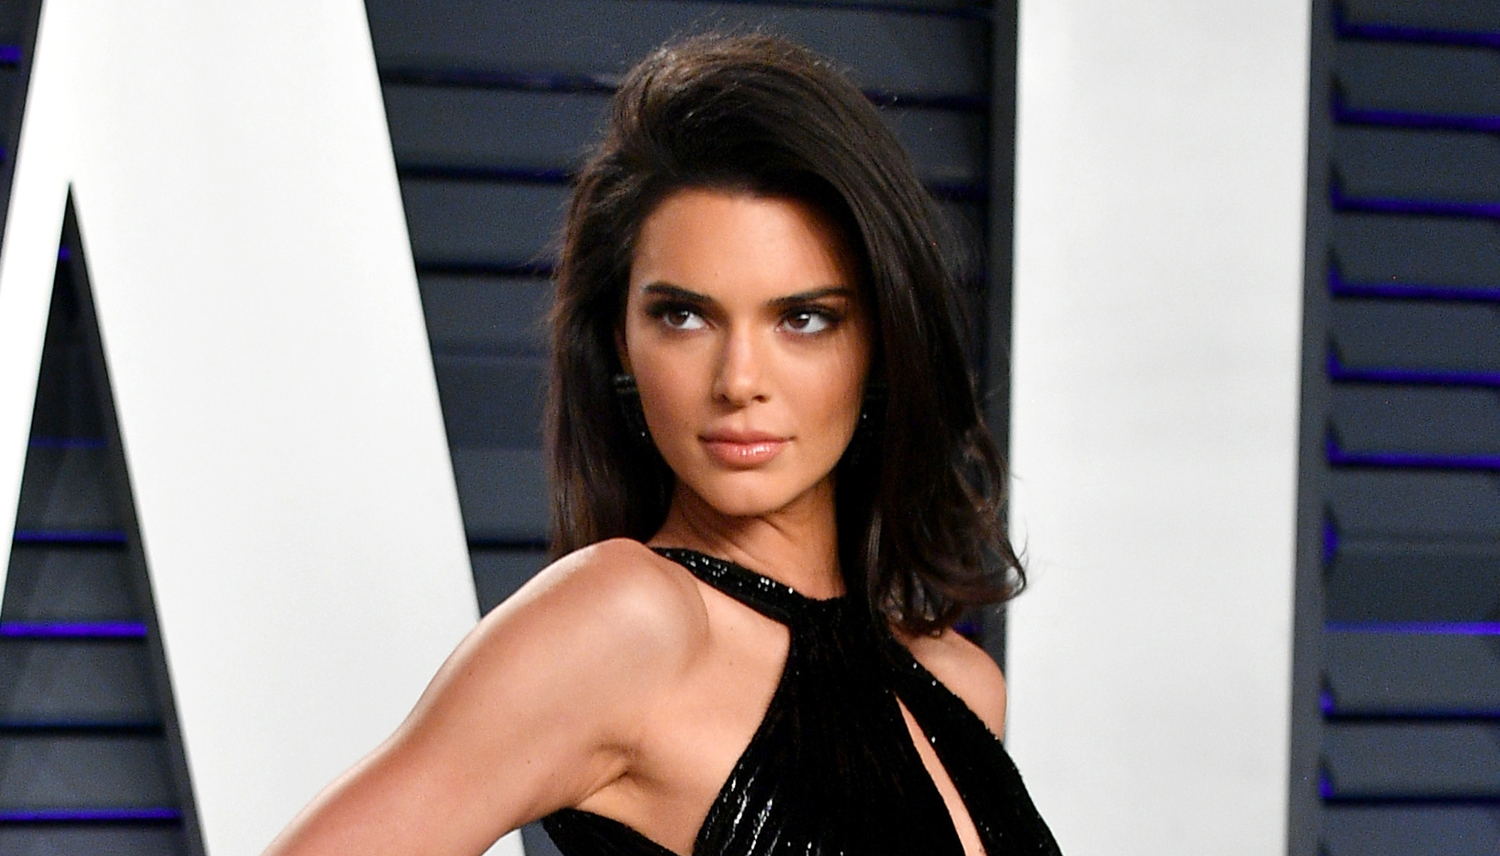 2019 Kendall Jenner Kylie Jenner nudes (33 foto and video), Topless, Sideboobs, Twitter, cleavage 2018